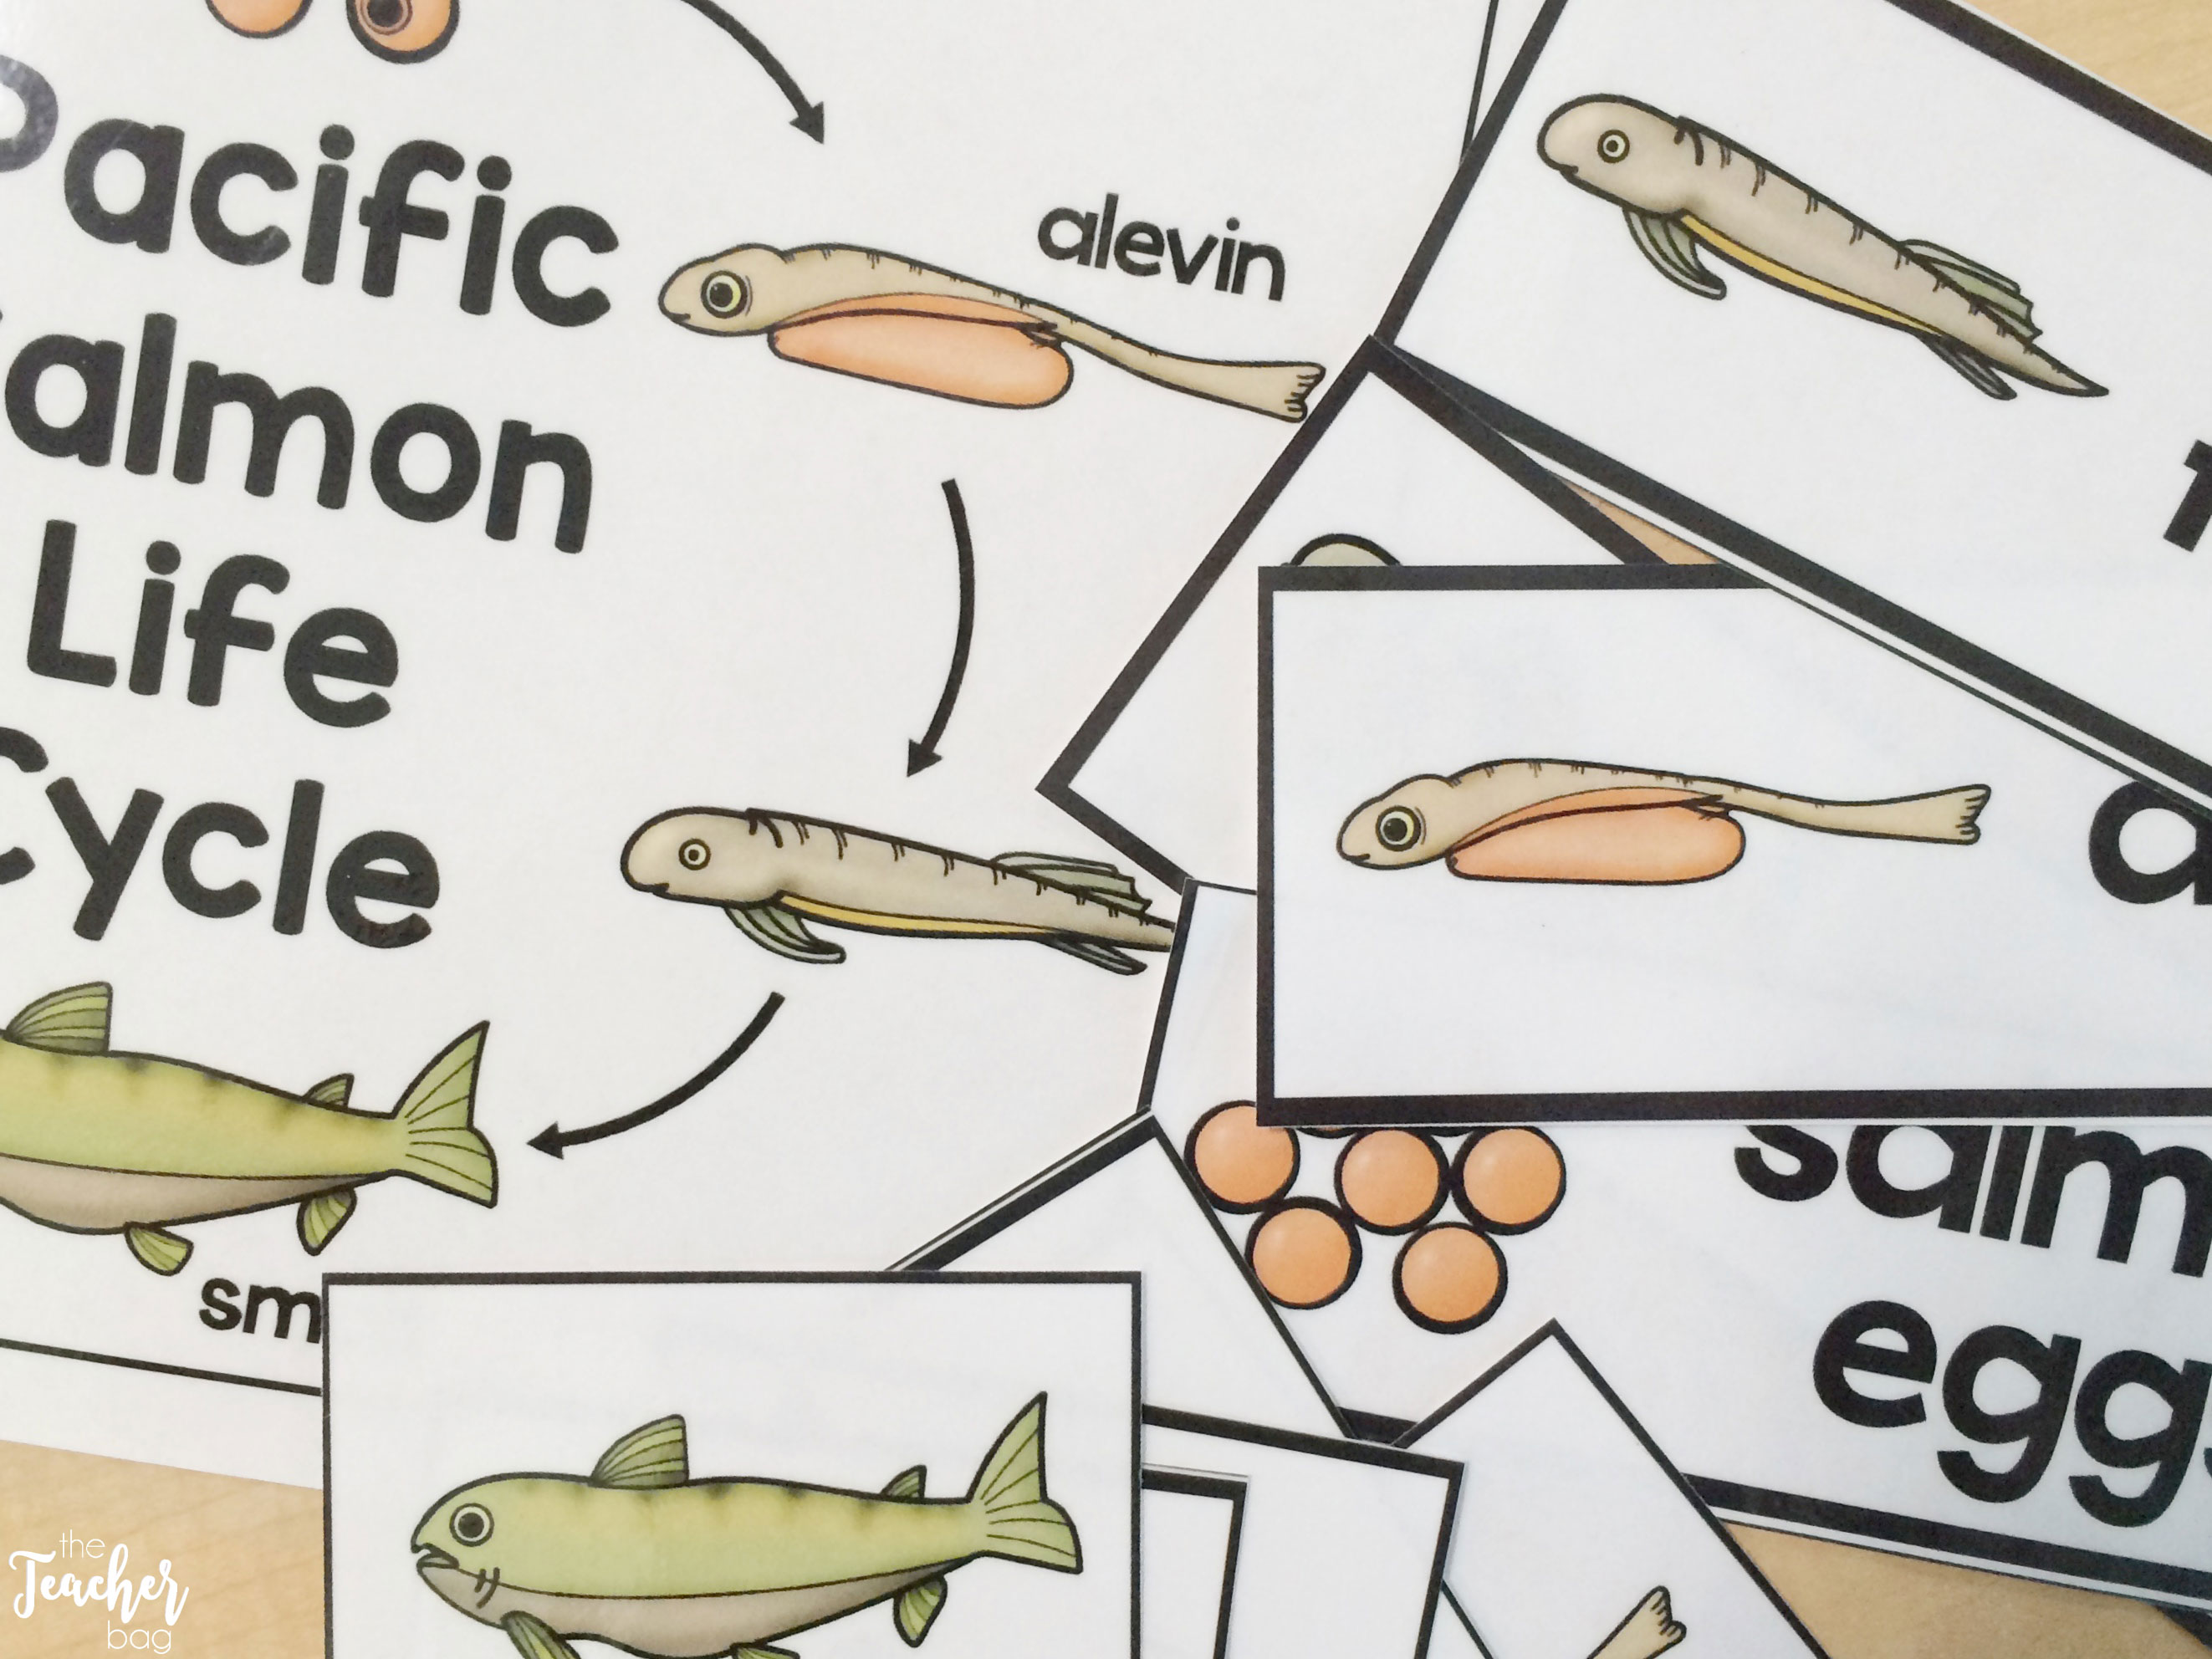 salmon life cycle cards